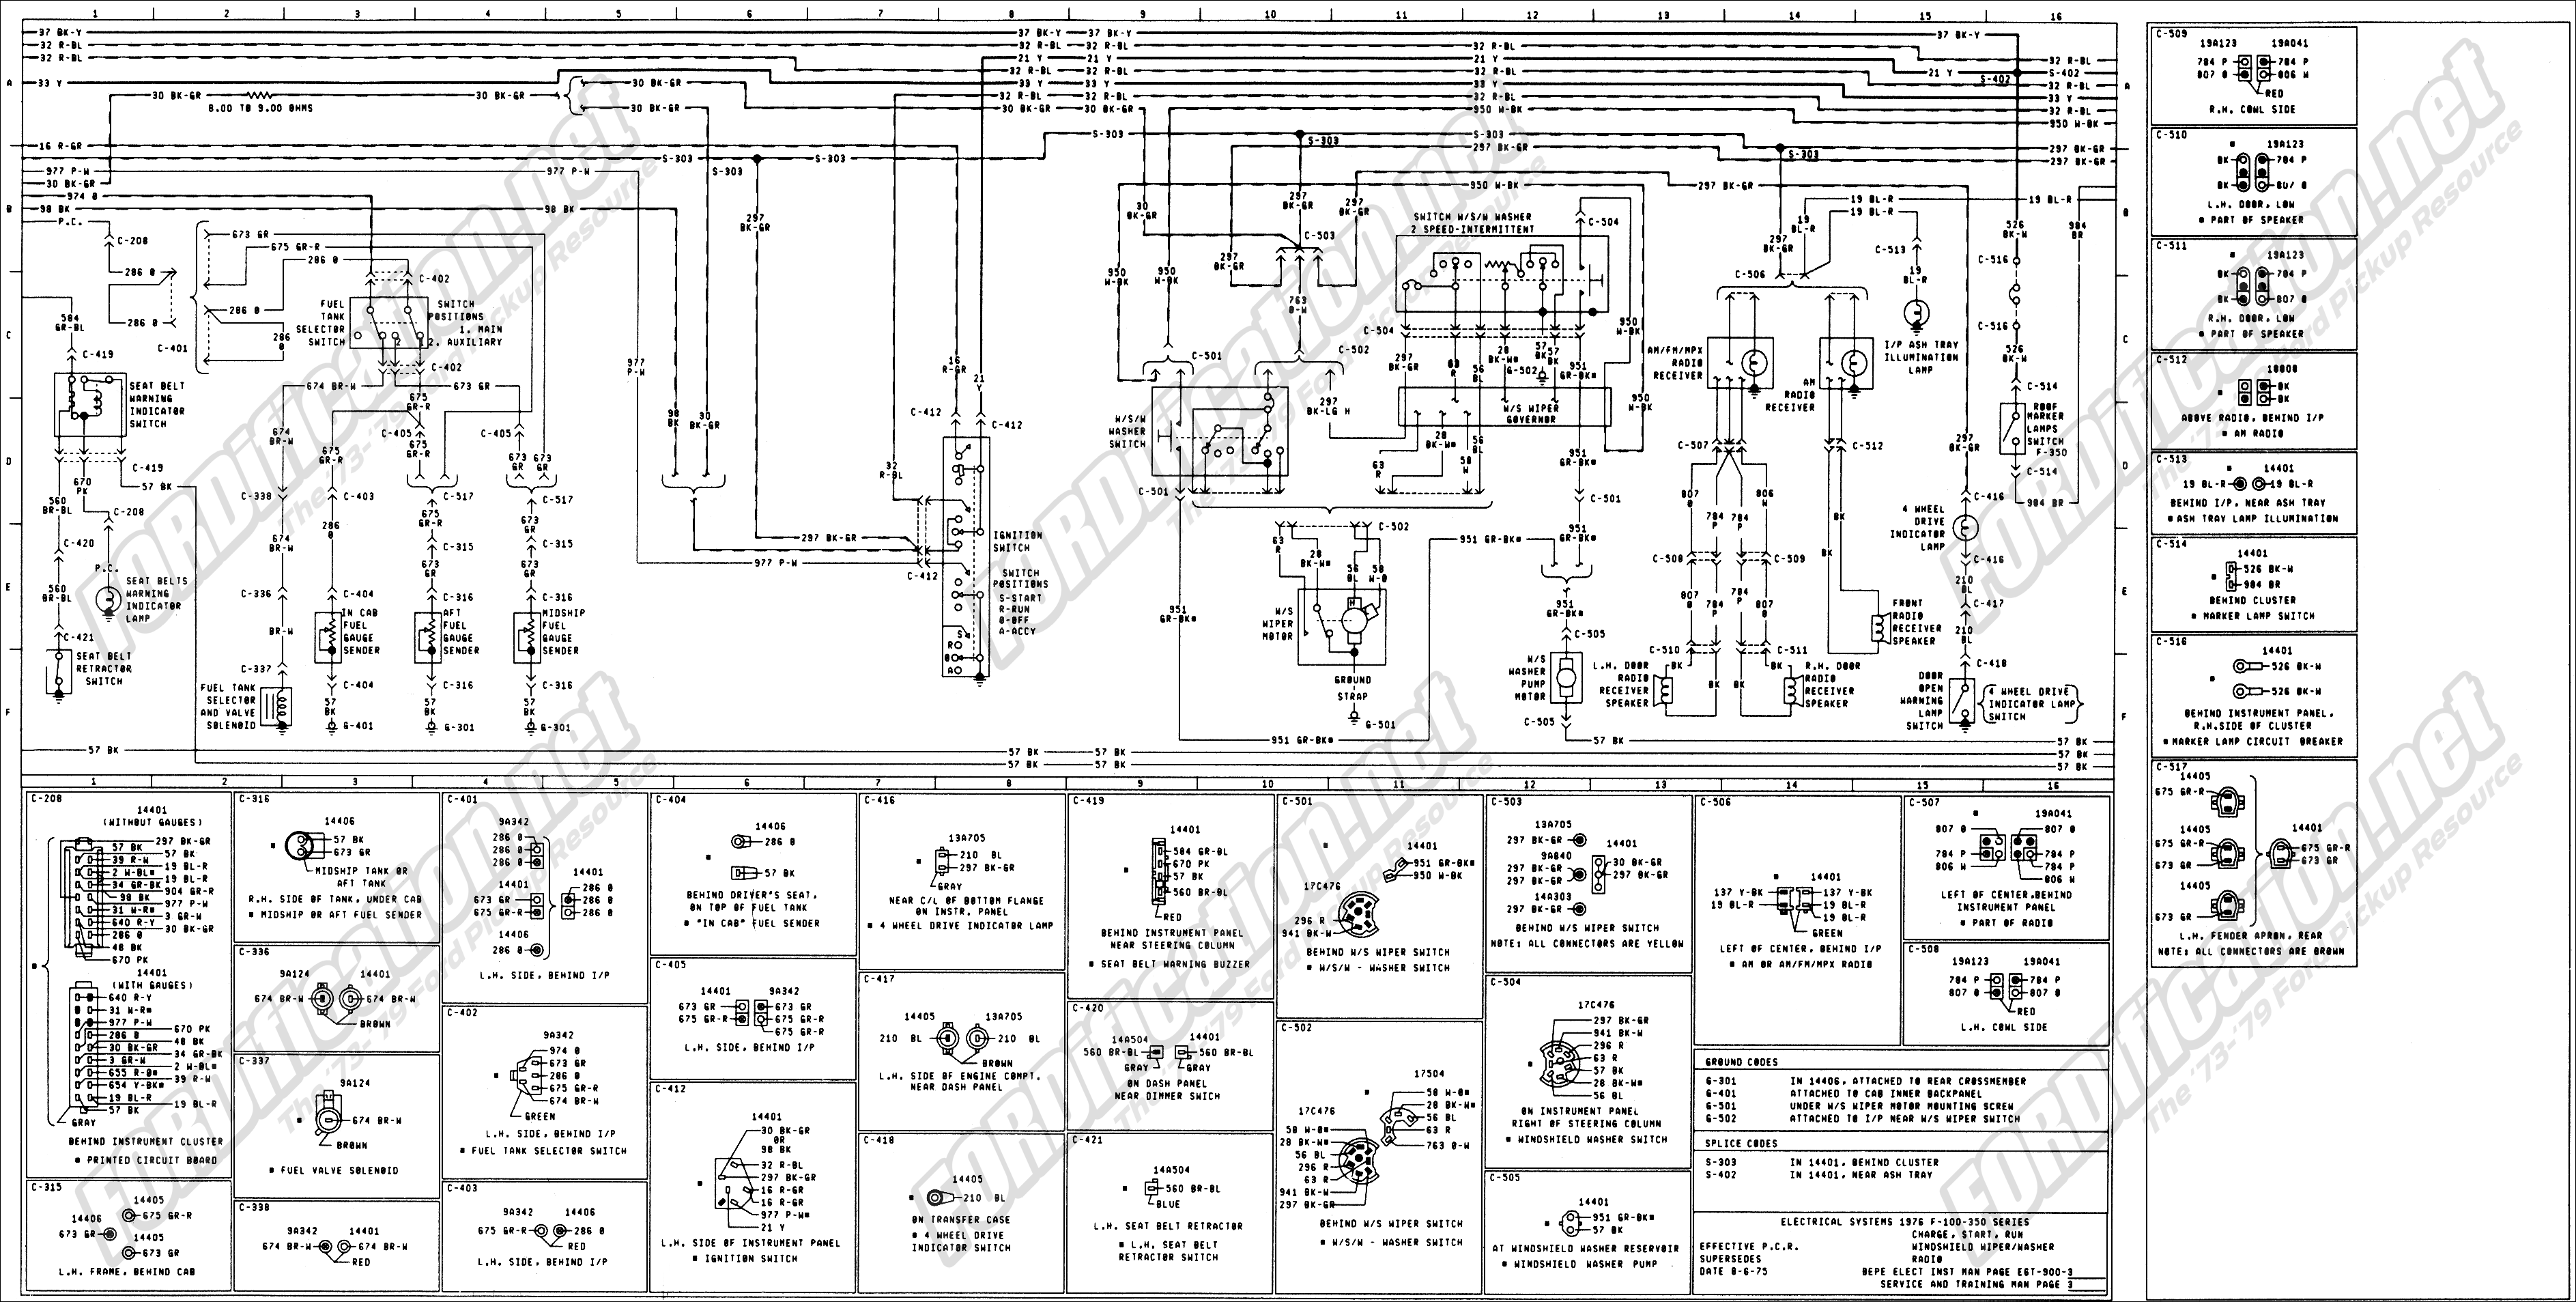 wiring_76master_3of9 1987 ford f 250 wiring diagram wiring diagram simonand 1979 ford f100 fuse box diagram at mifinder.co